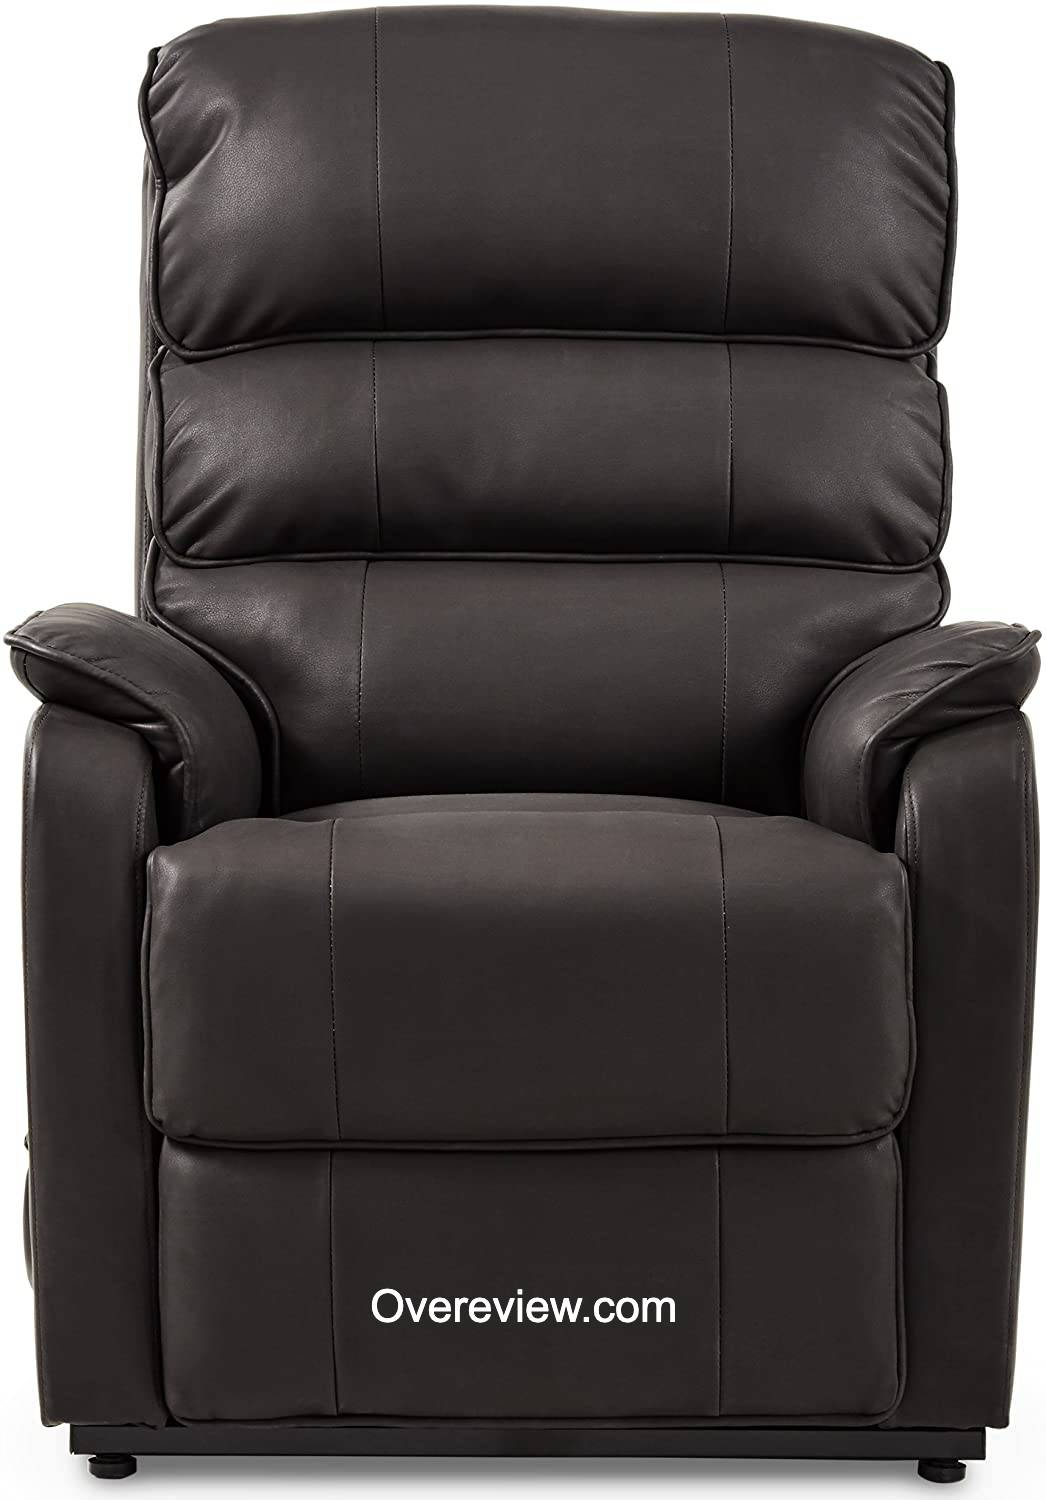 Best 15 Most Comfortable Recliners {Buying Guide} Reviews - [year] 10